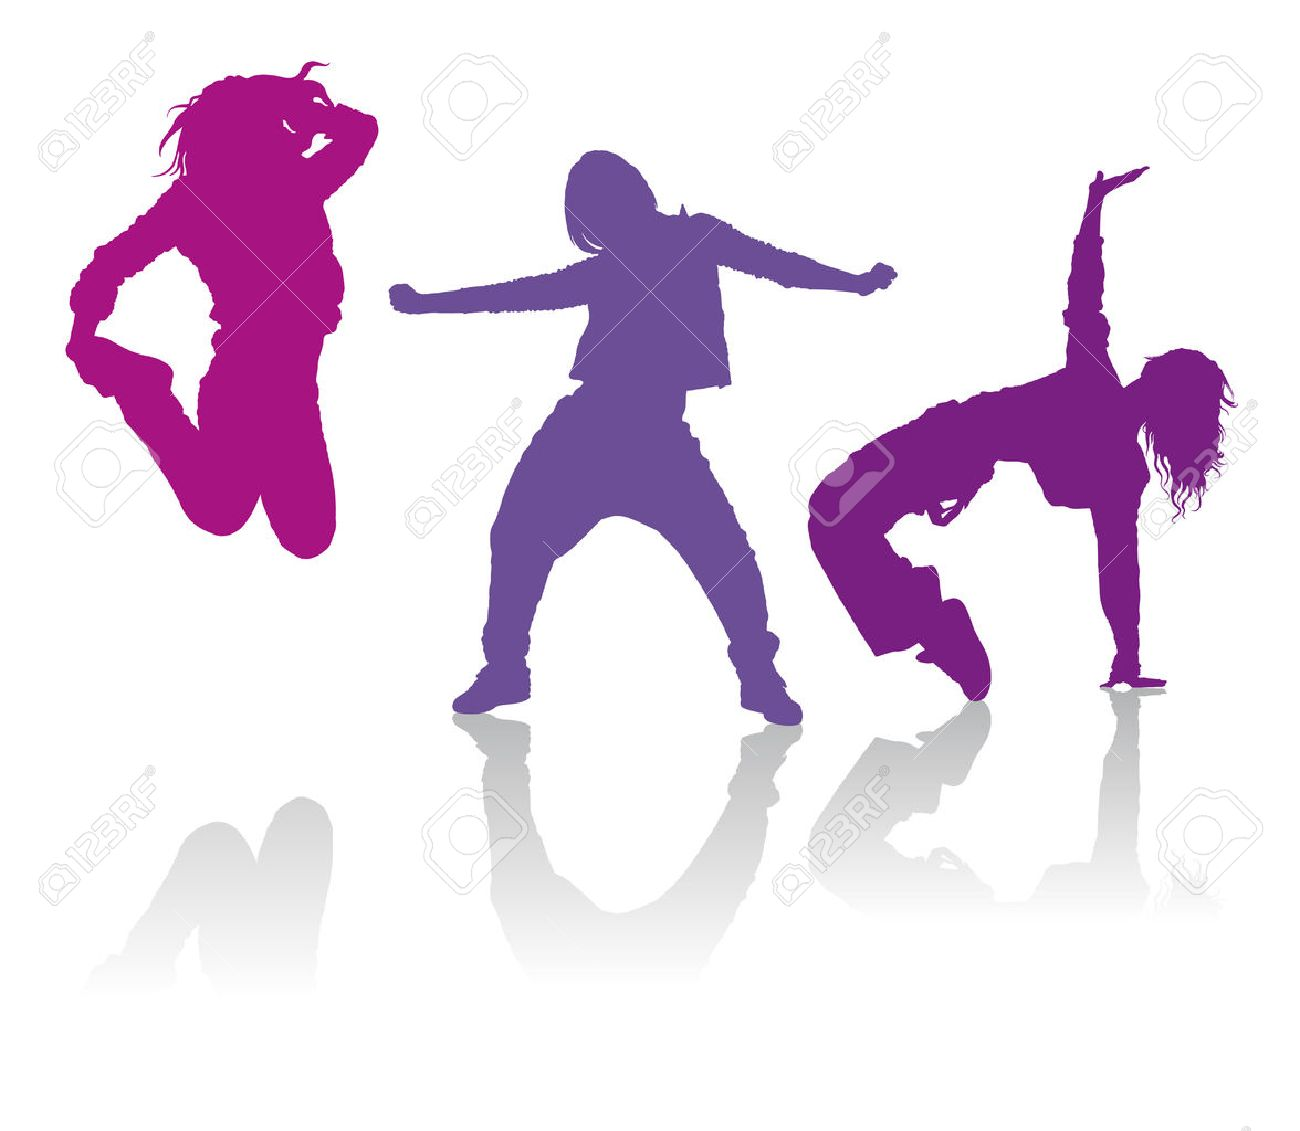 Detailed silhouettes of girls dancing hip hop dance detailed silhouettes of girls dancing hip hop dance 38937374 voltagebd Choice Image